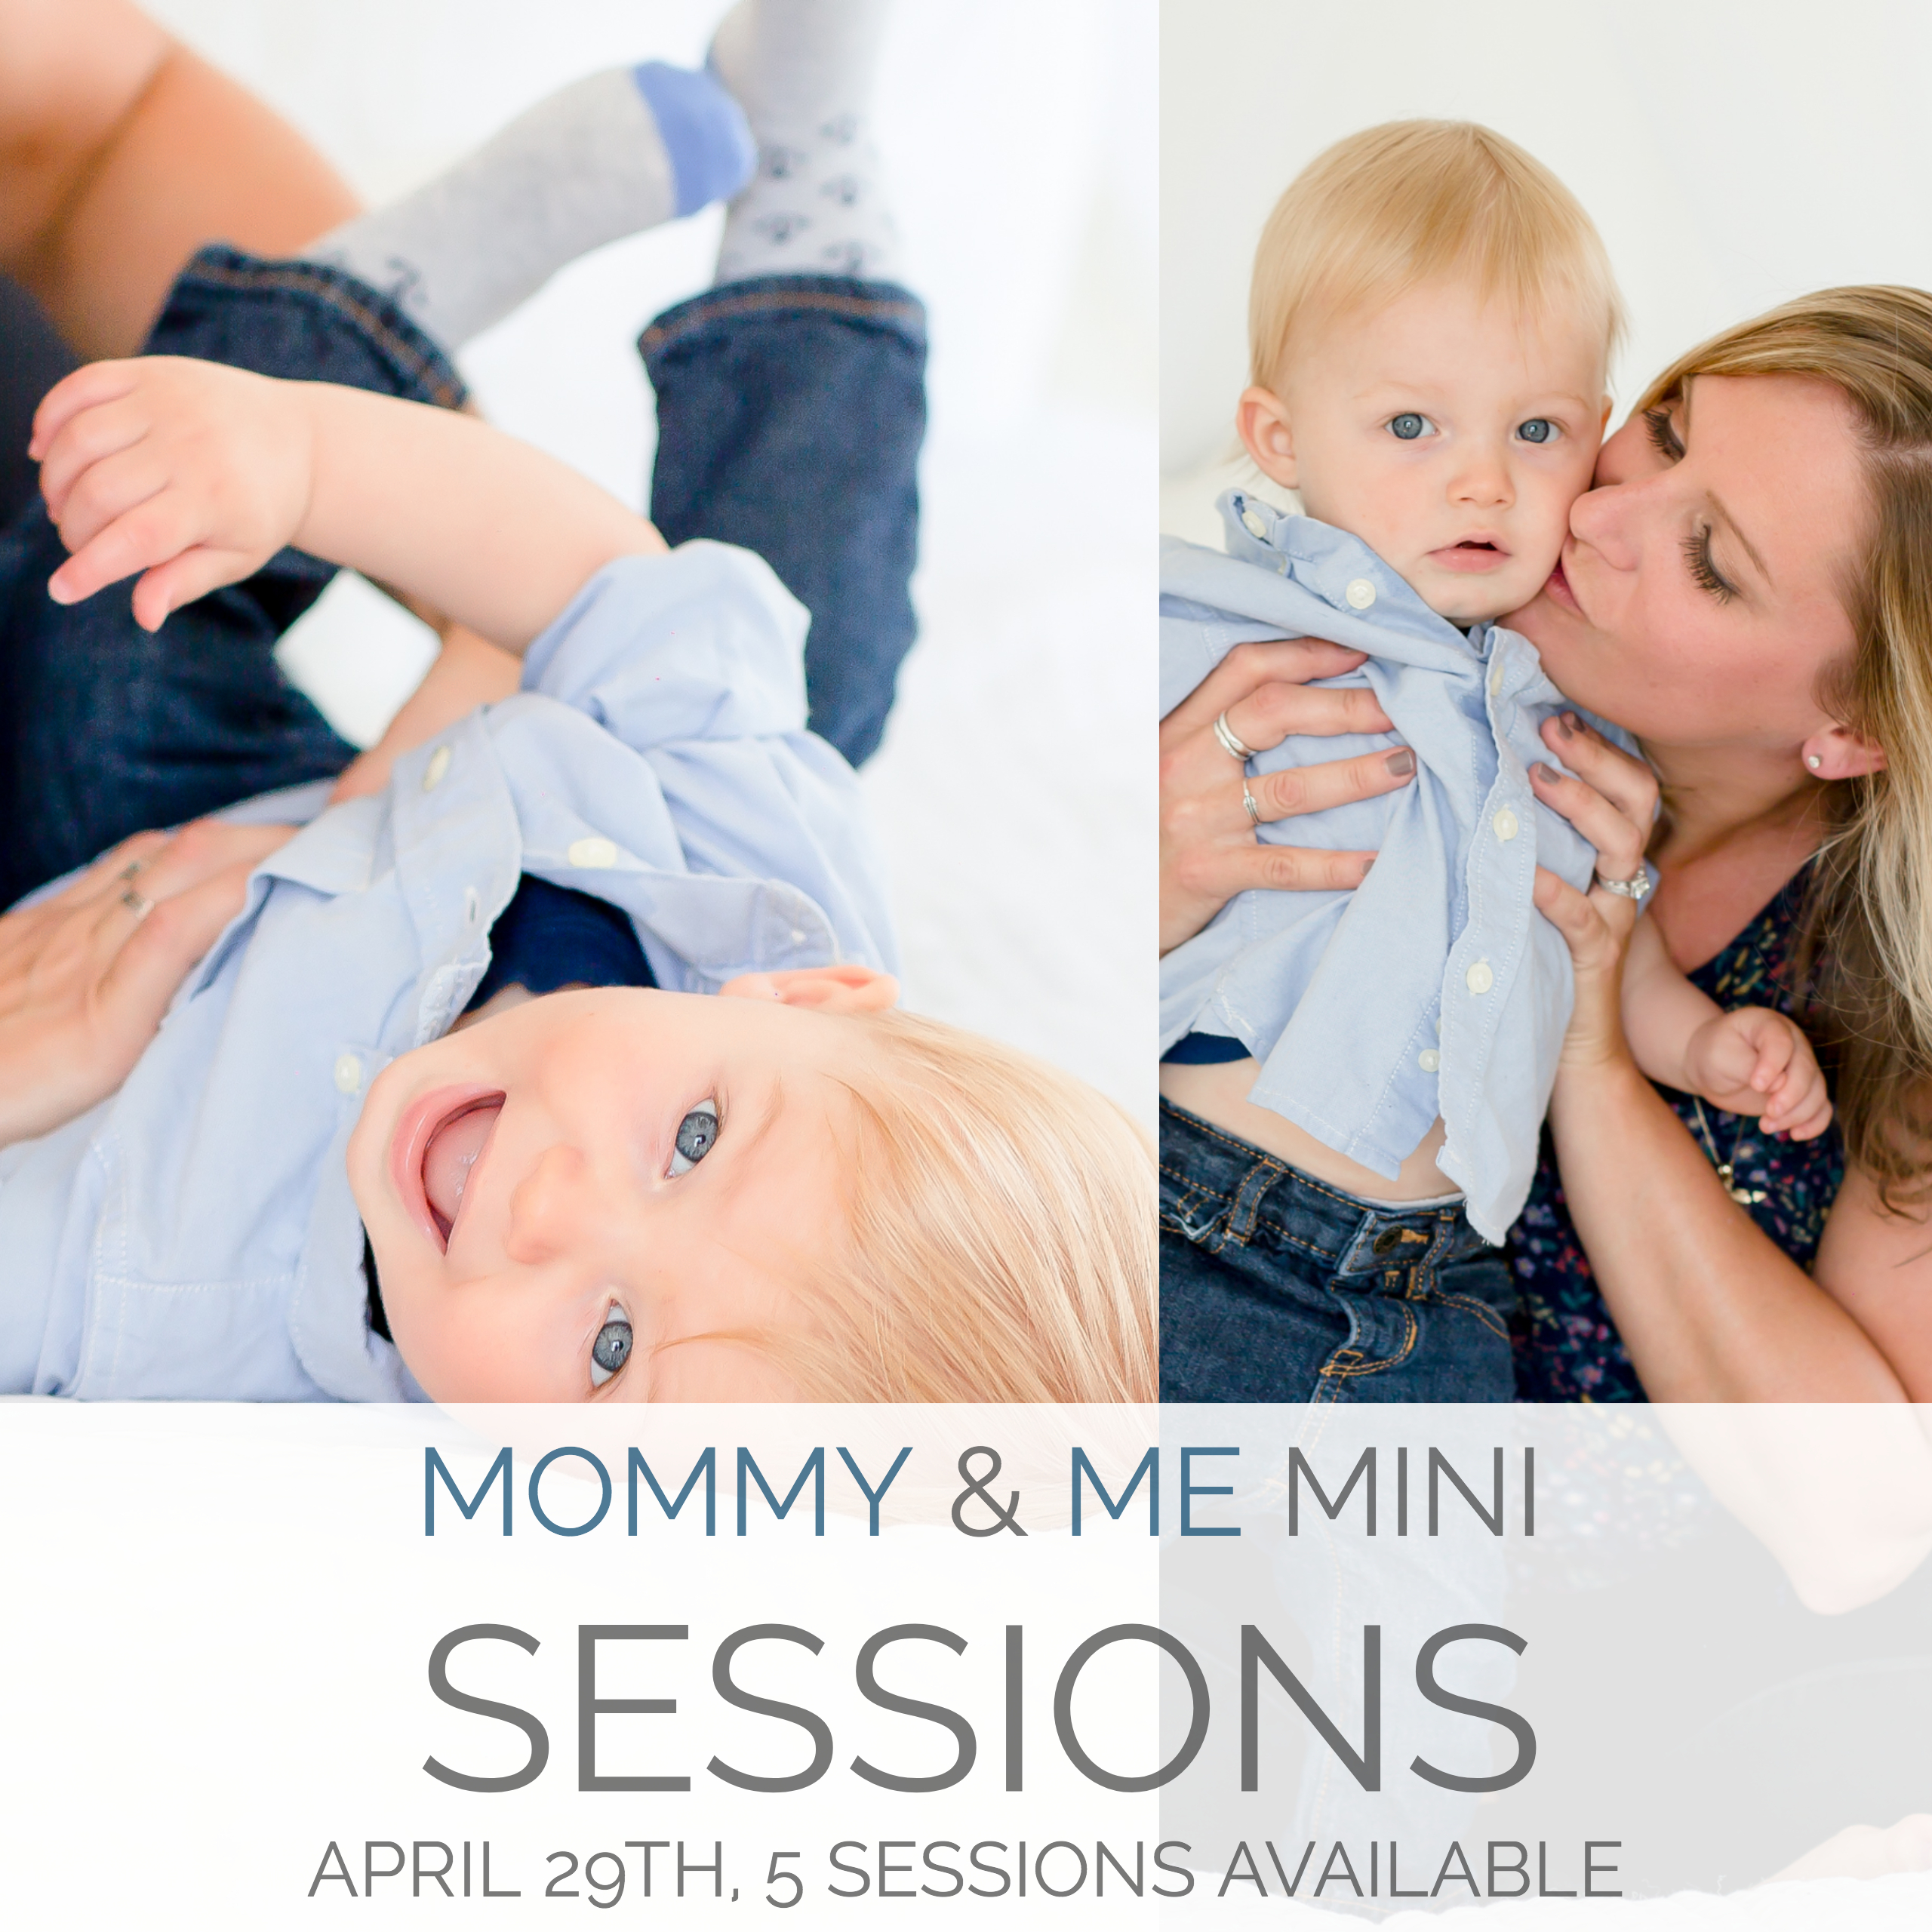 Mommy & Me Mini Sessions at The Studio Hampton Roads